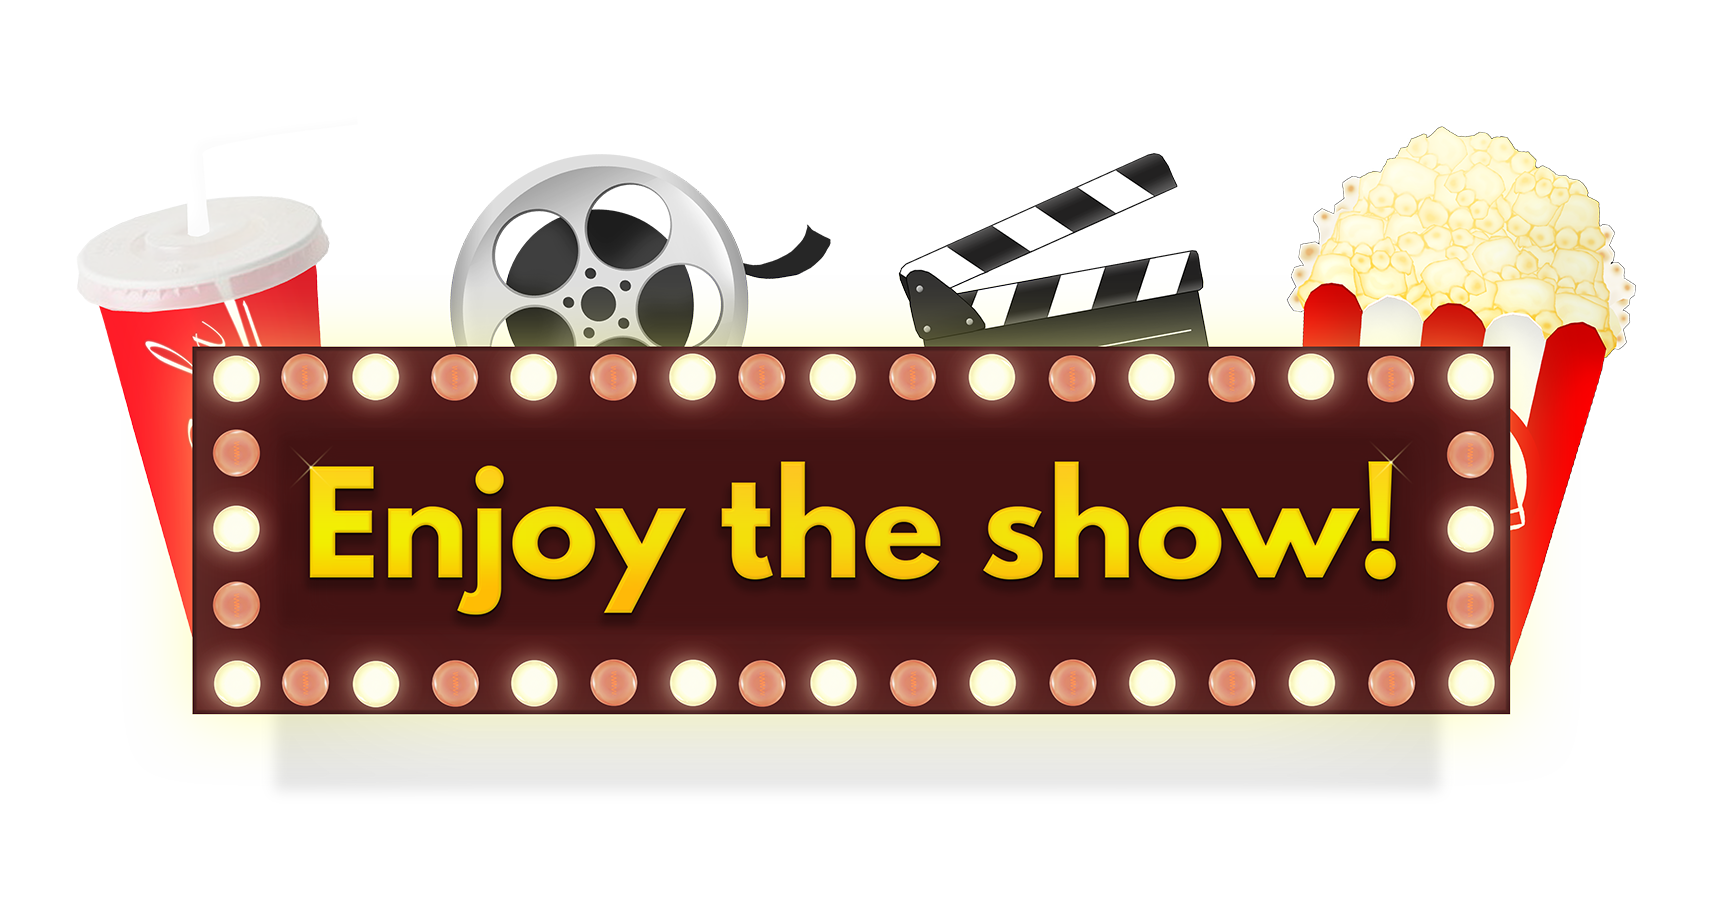 Collection of free comedies. Film clipart movie matinee